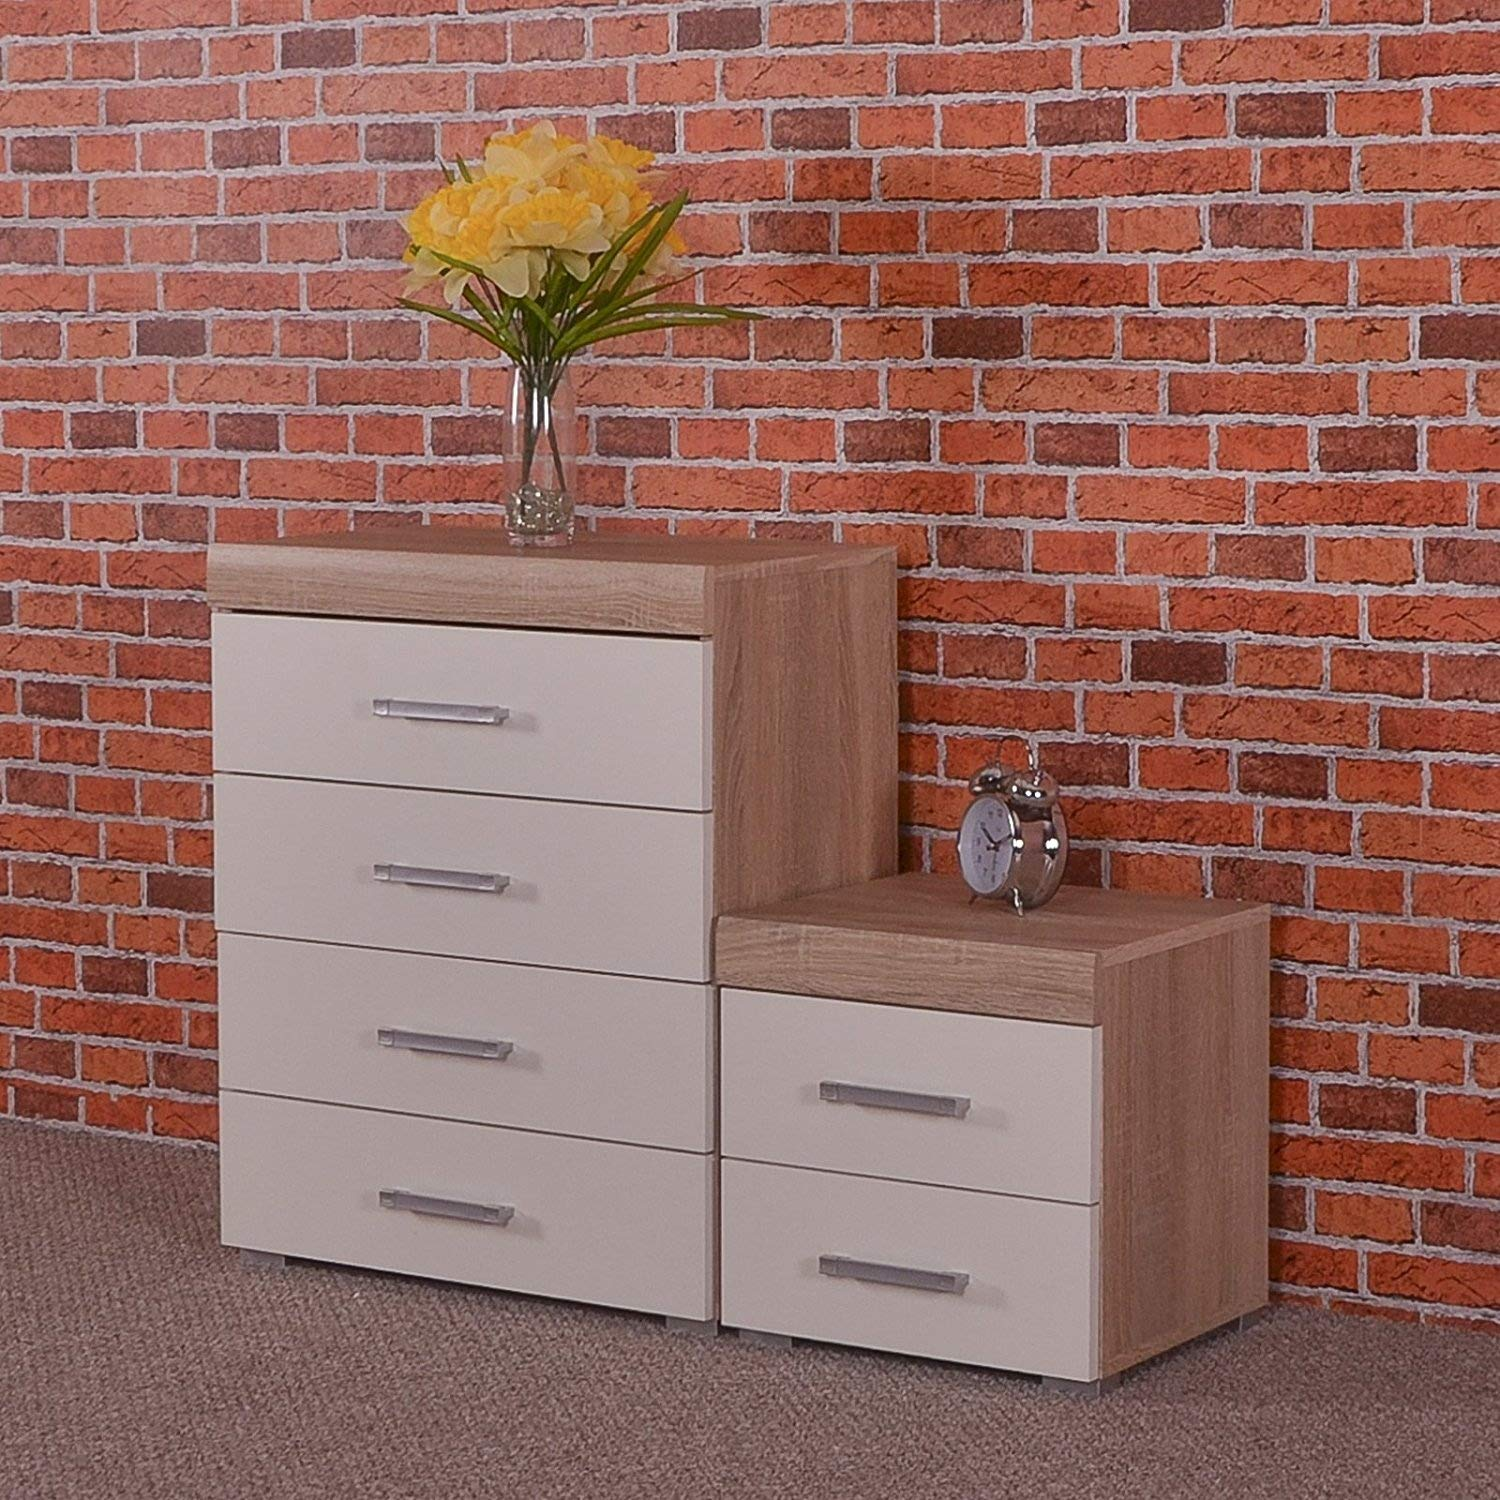 DRP Trading White & Sonoma Oak 4 Drawer Chest & 2 Drawer Bedside Cabinet Bedroom Furniture